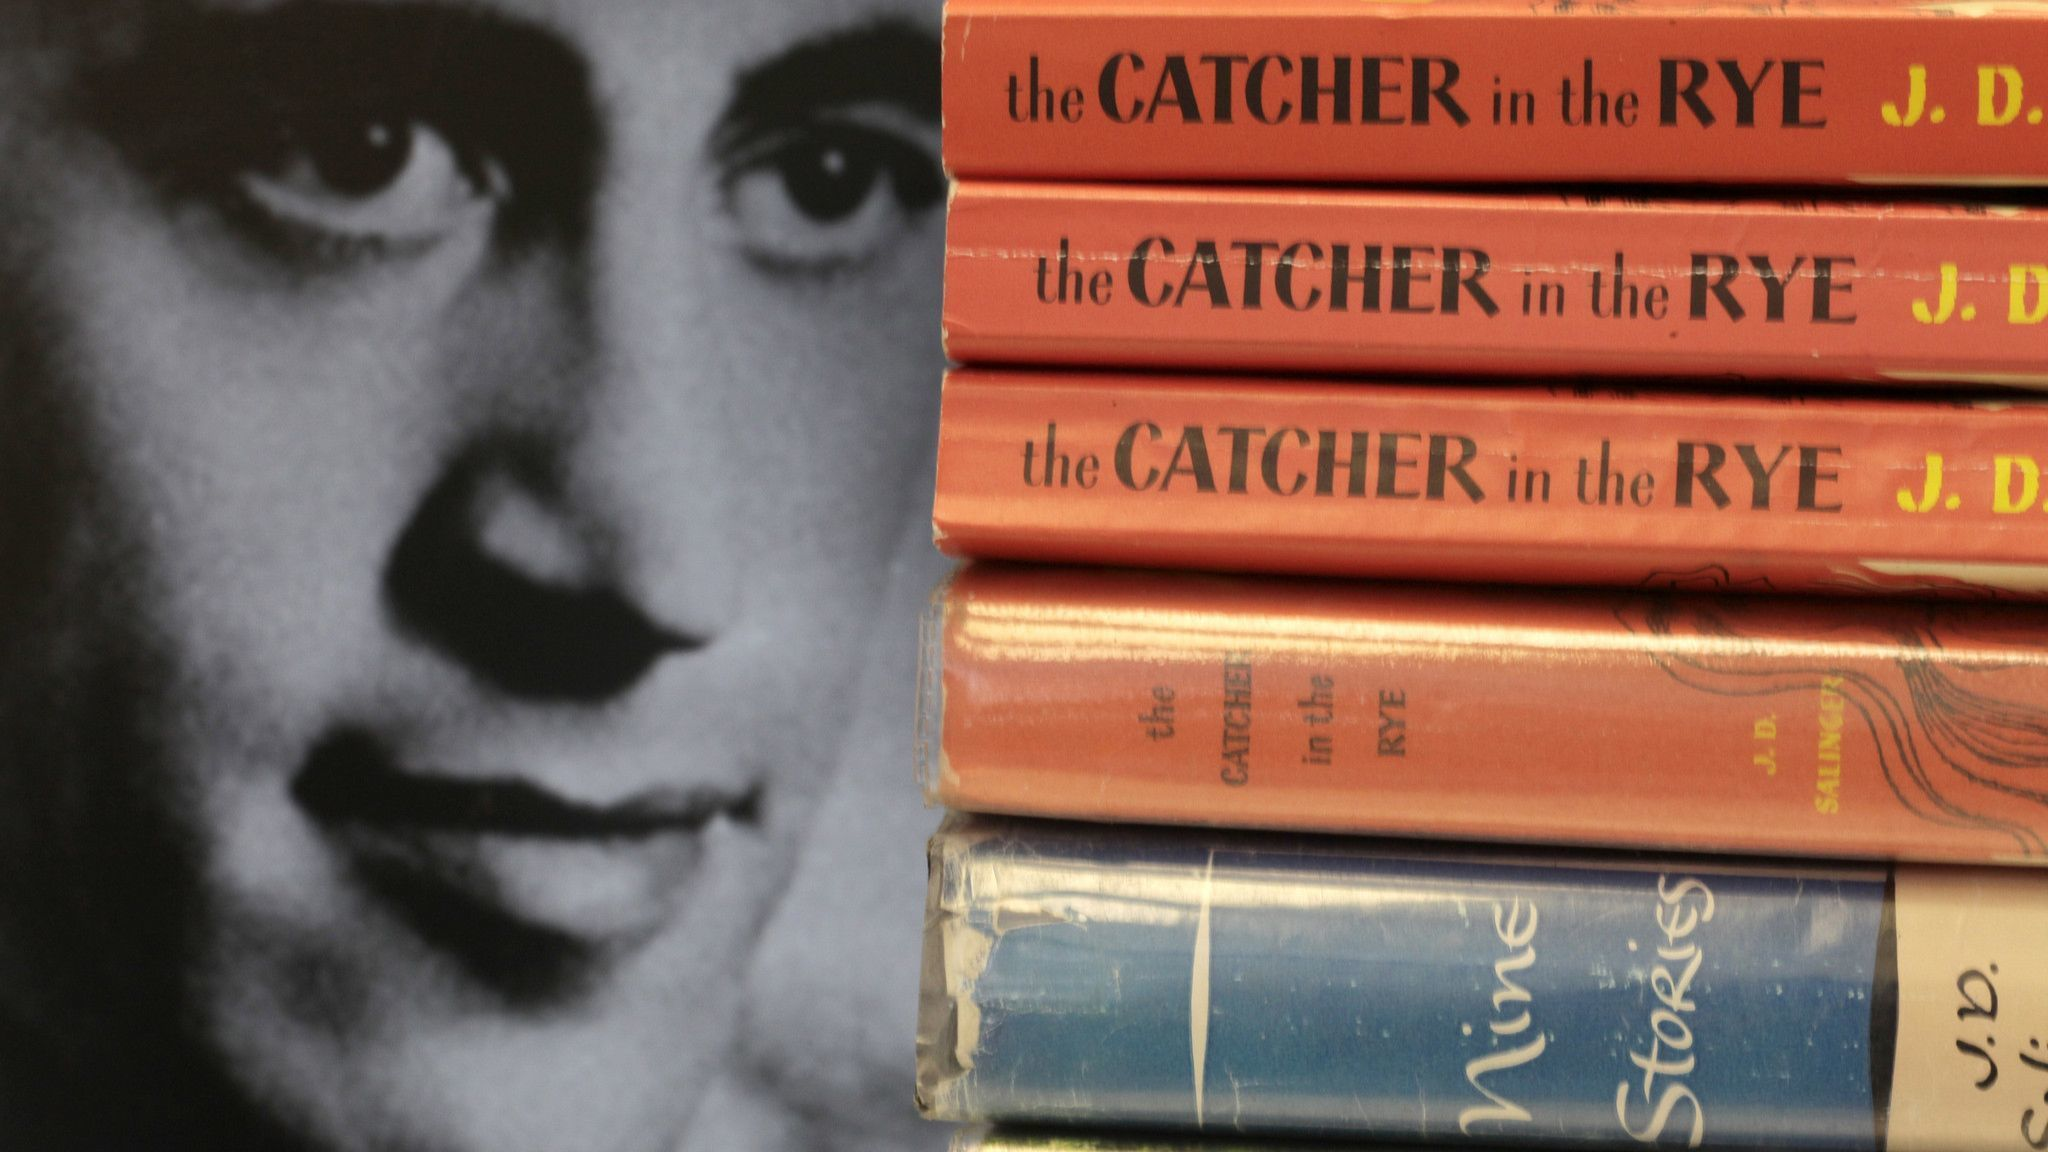 50 years later, more work is coming from J.D. Salinger — but should we be excited about it?